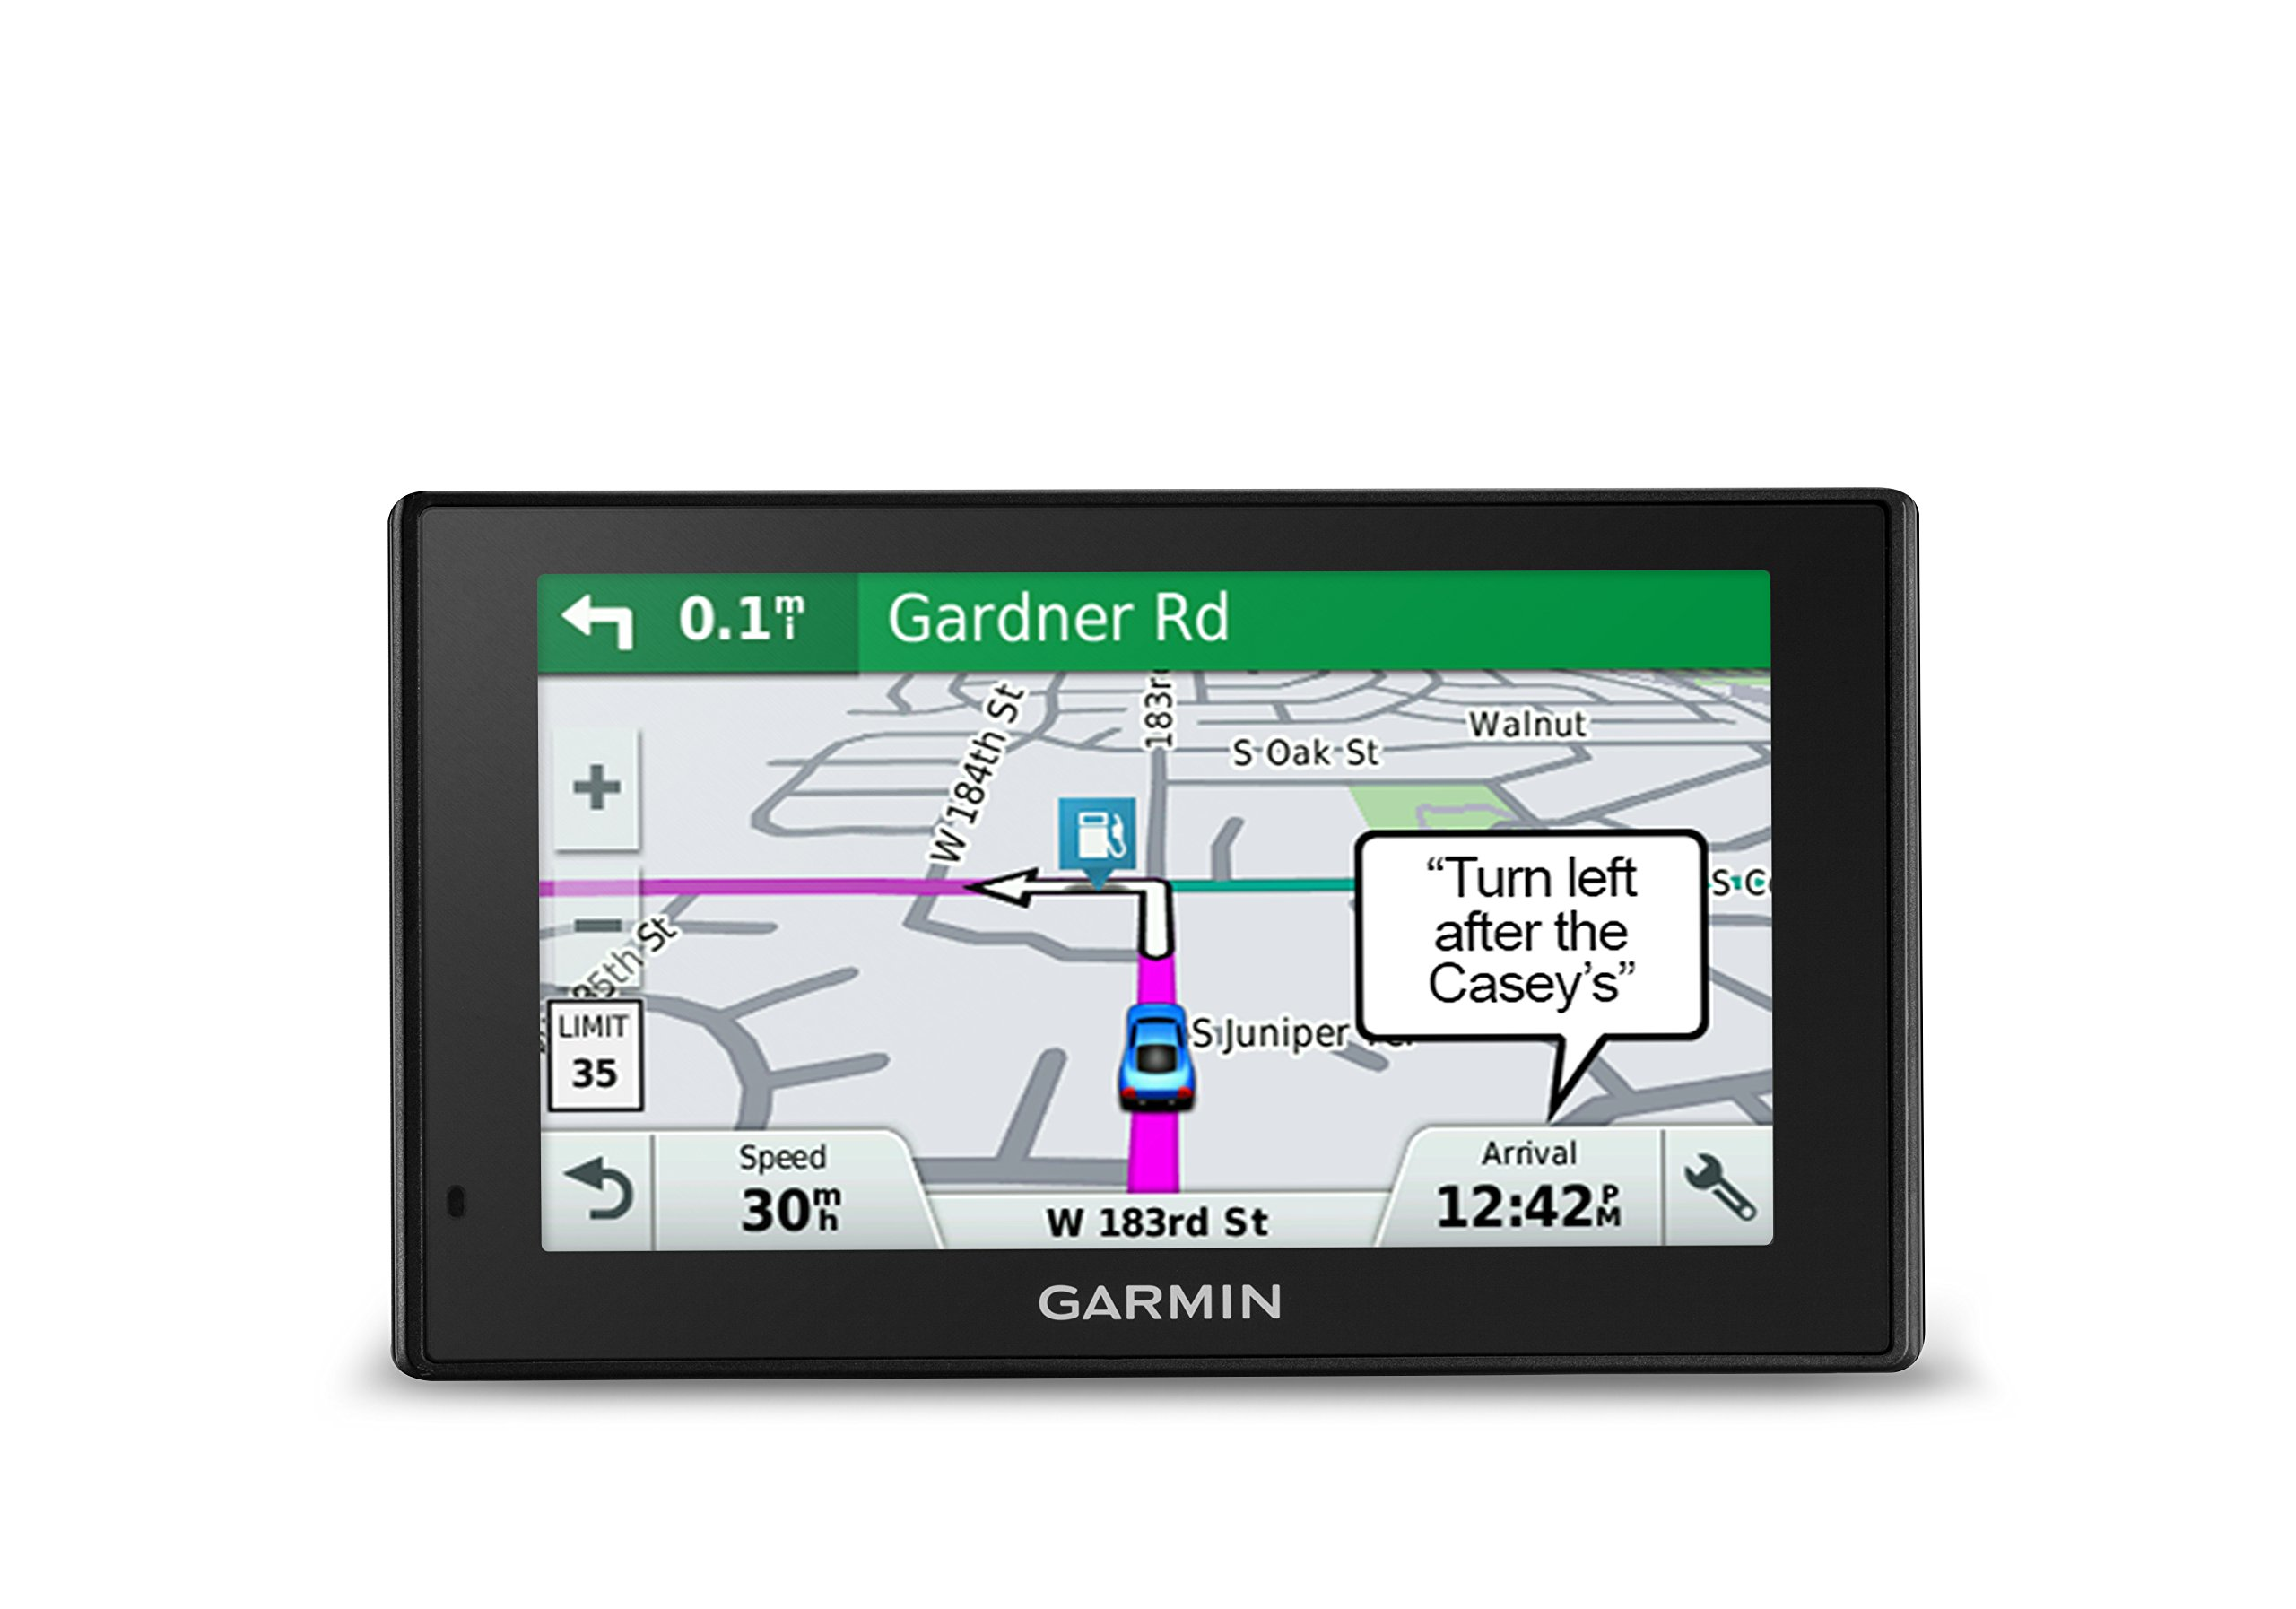 Garmin DriveSmart Navigator Notifications Activation